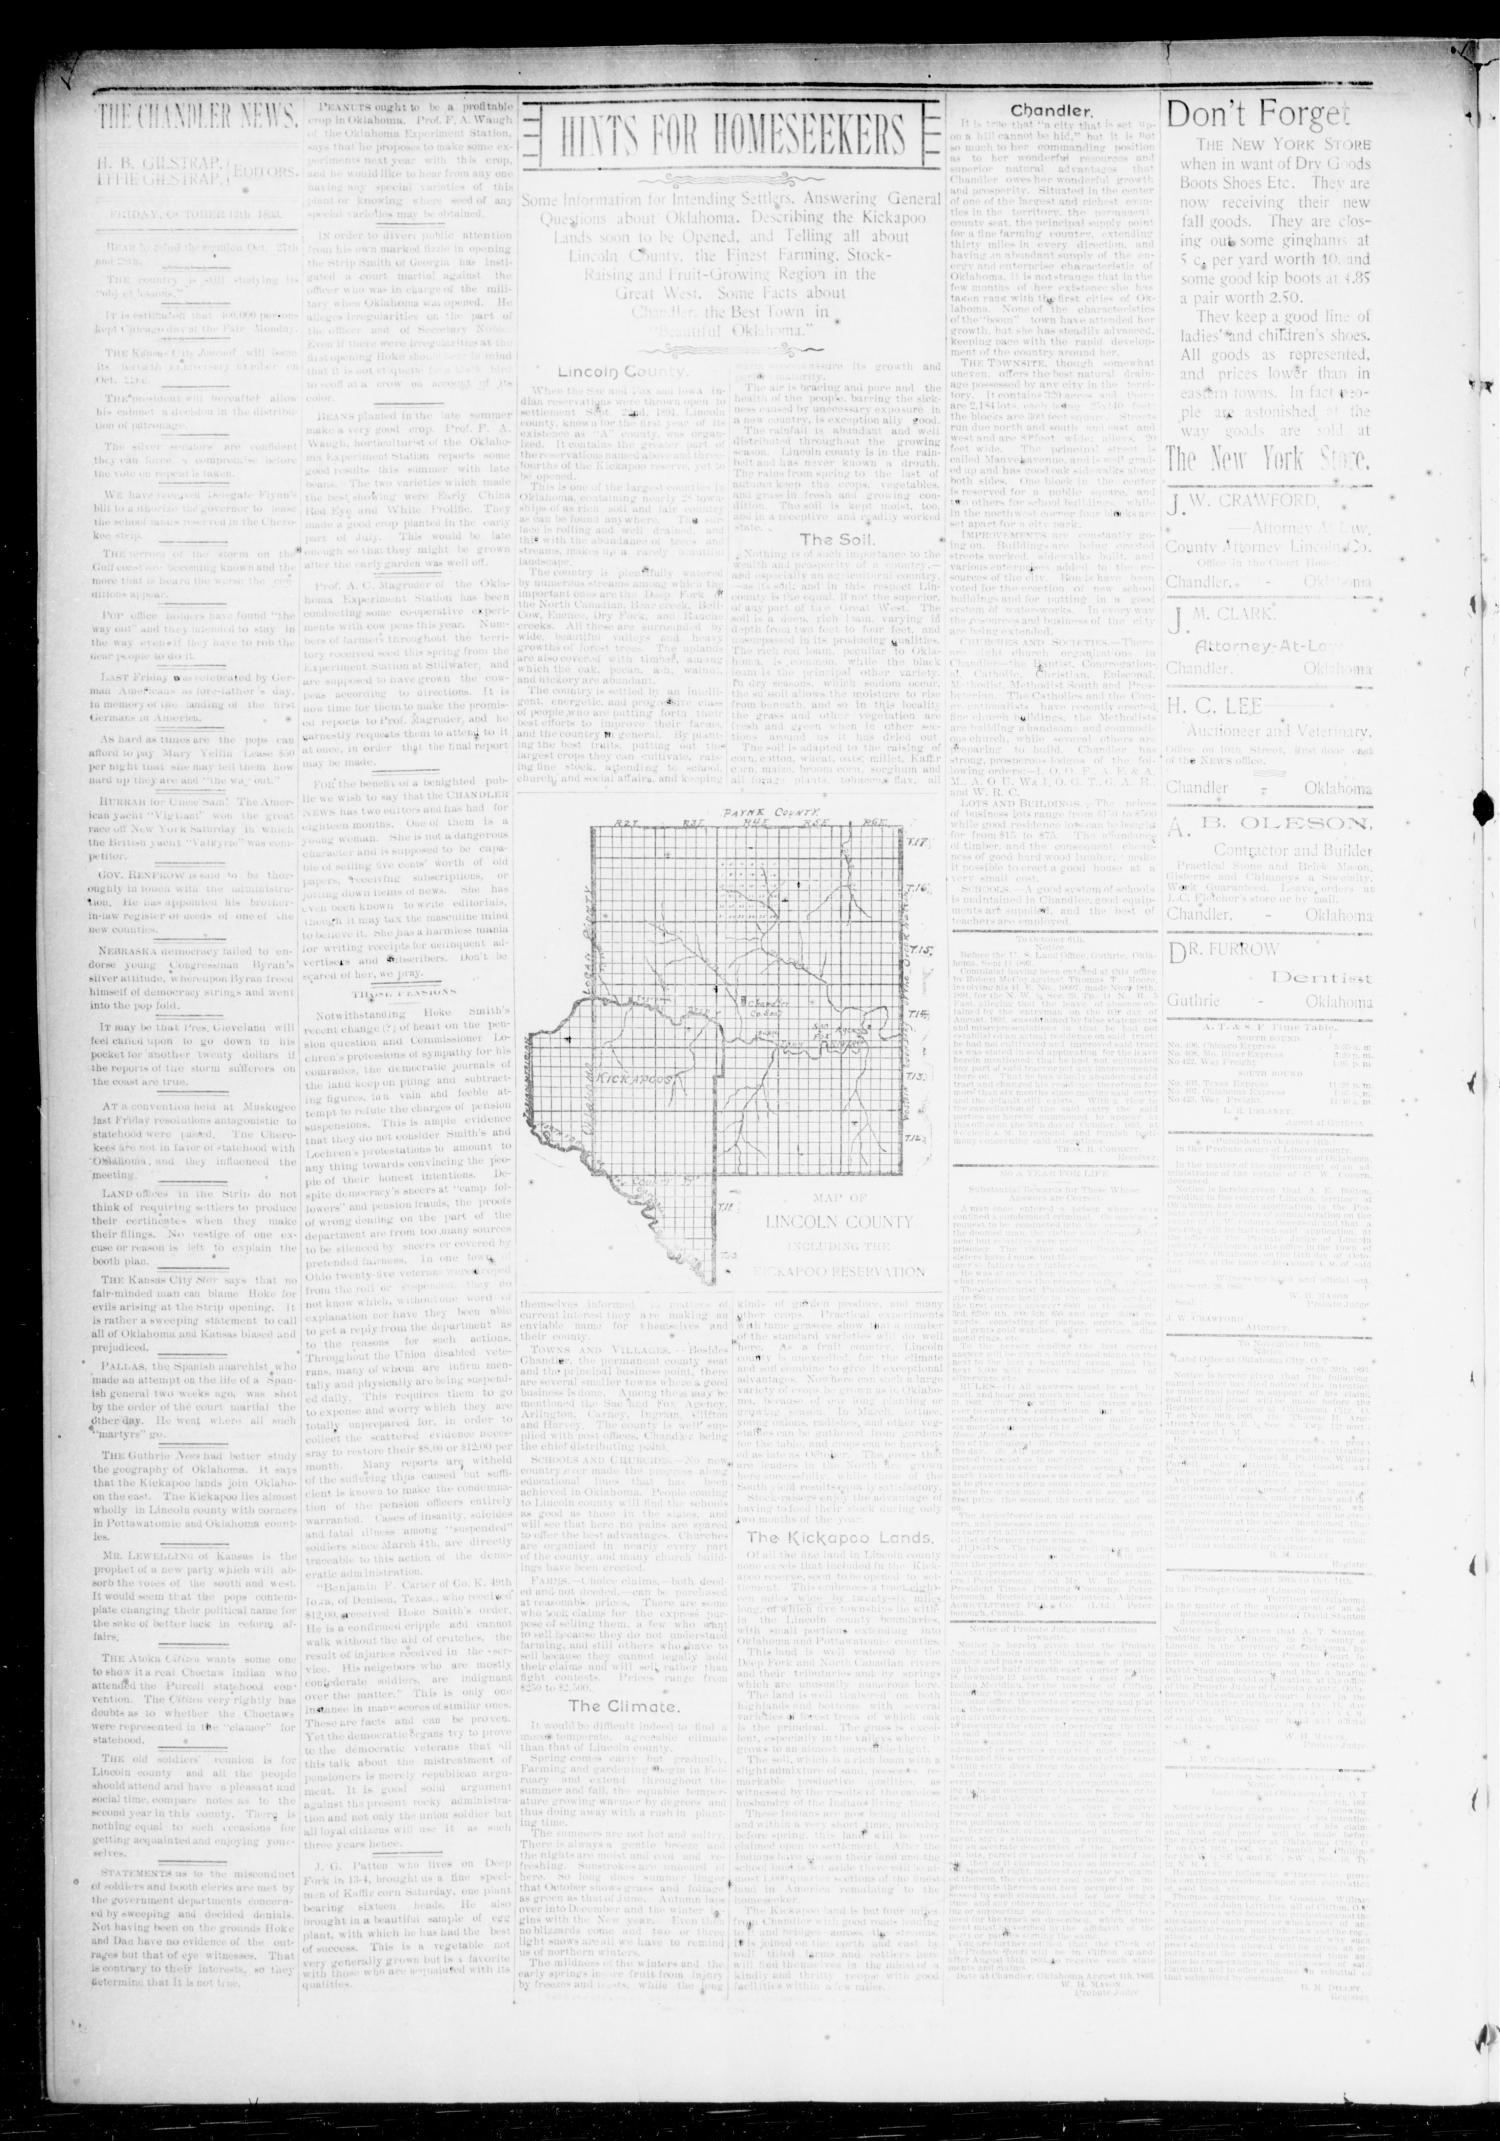 The Chandler News. (Chandler, Okla.), Vol. 3, No. 3, Ed. 1 Friday, October 13, 1893                                                                                                      [Sequence #]: 4 of 8